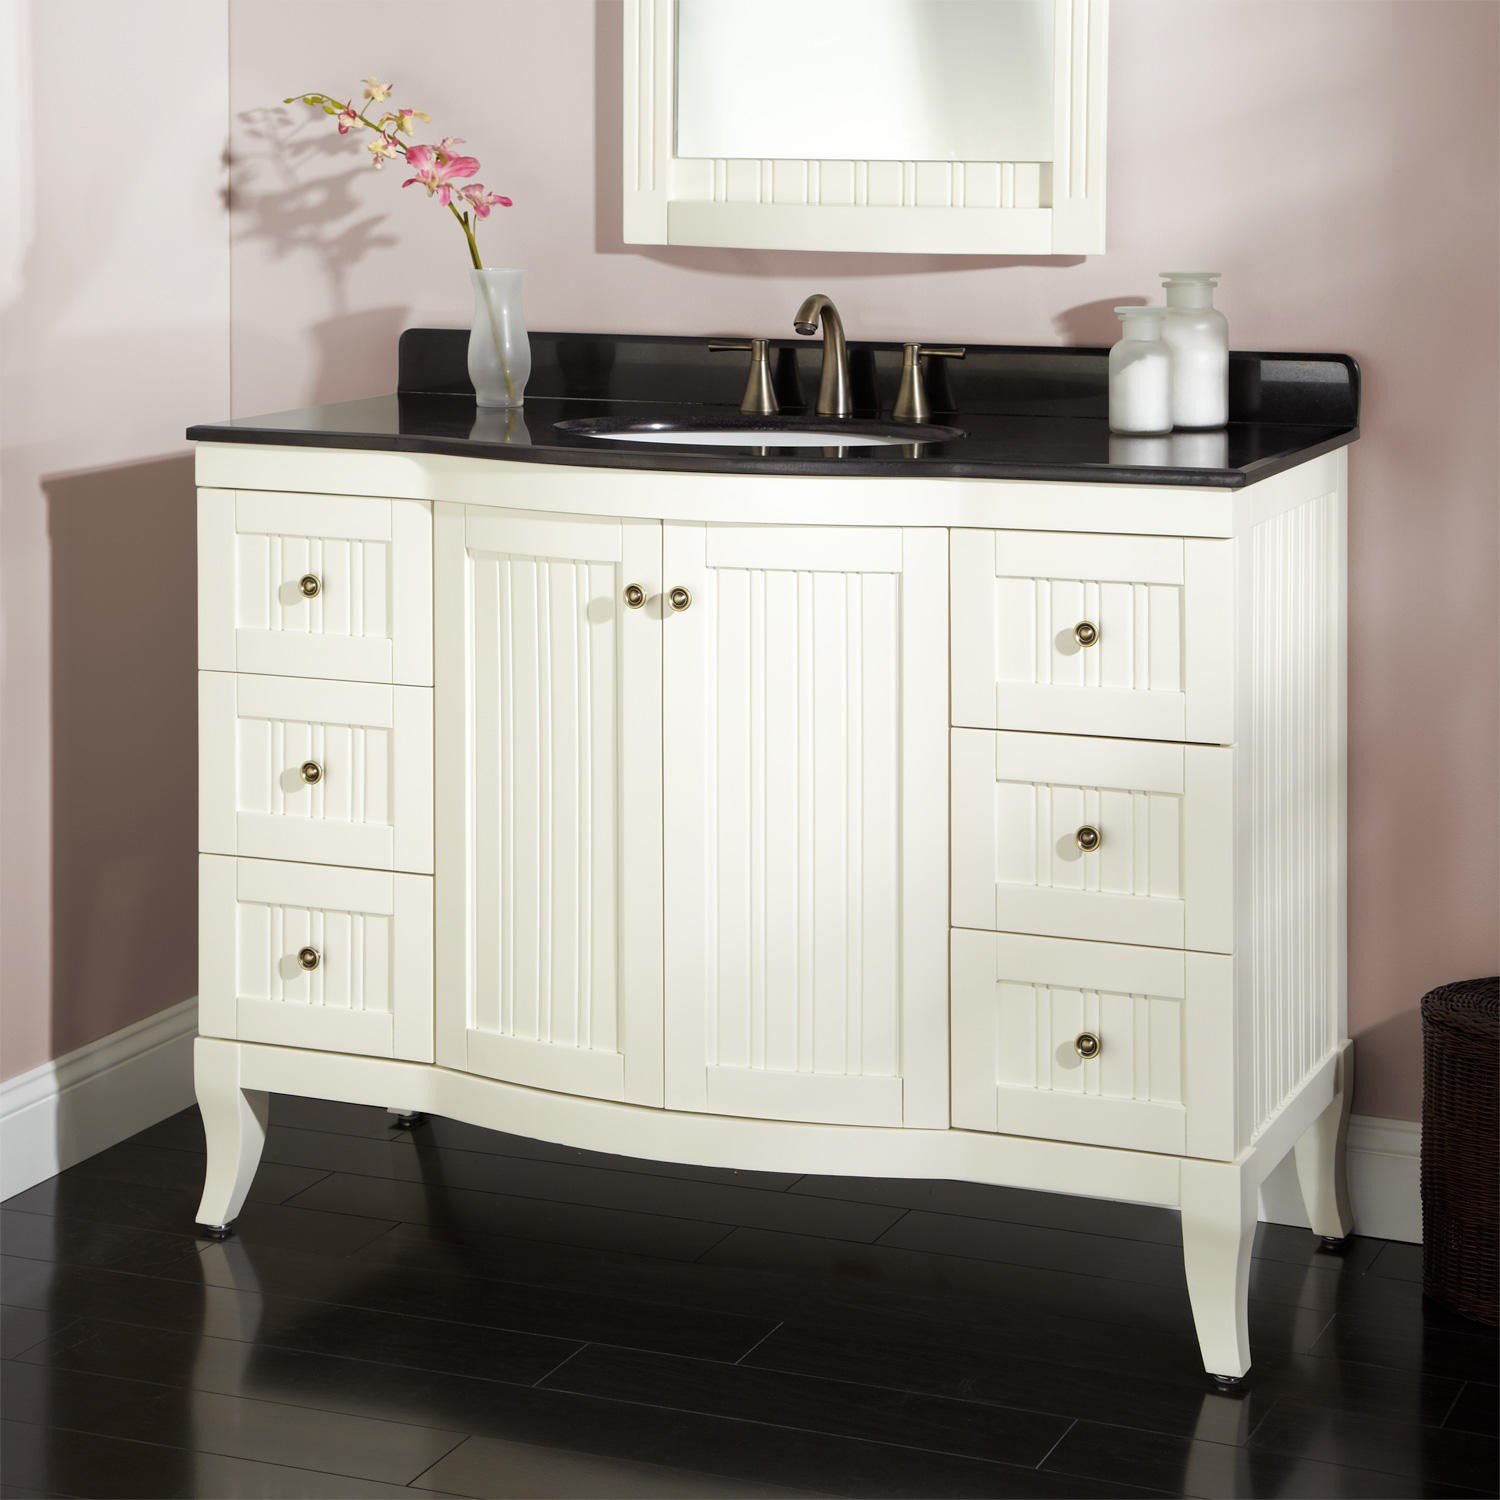 art gold vanities vanity italian wood bathroom lacquer black lutetia in luxury deco